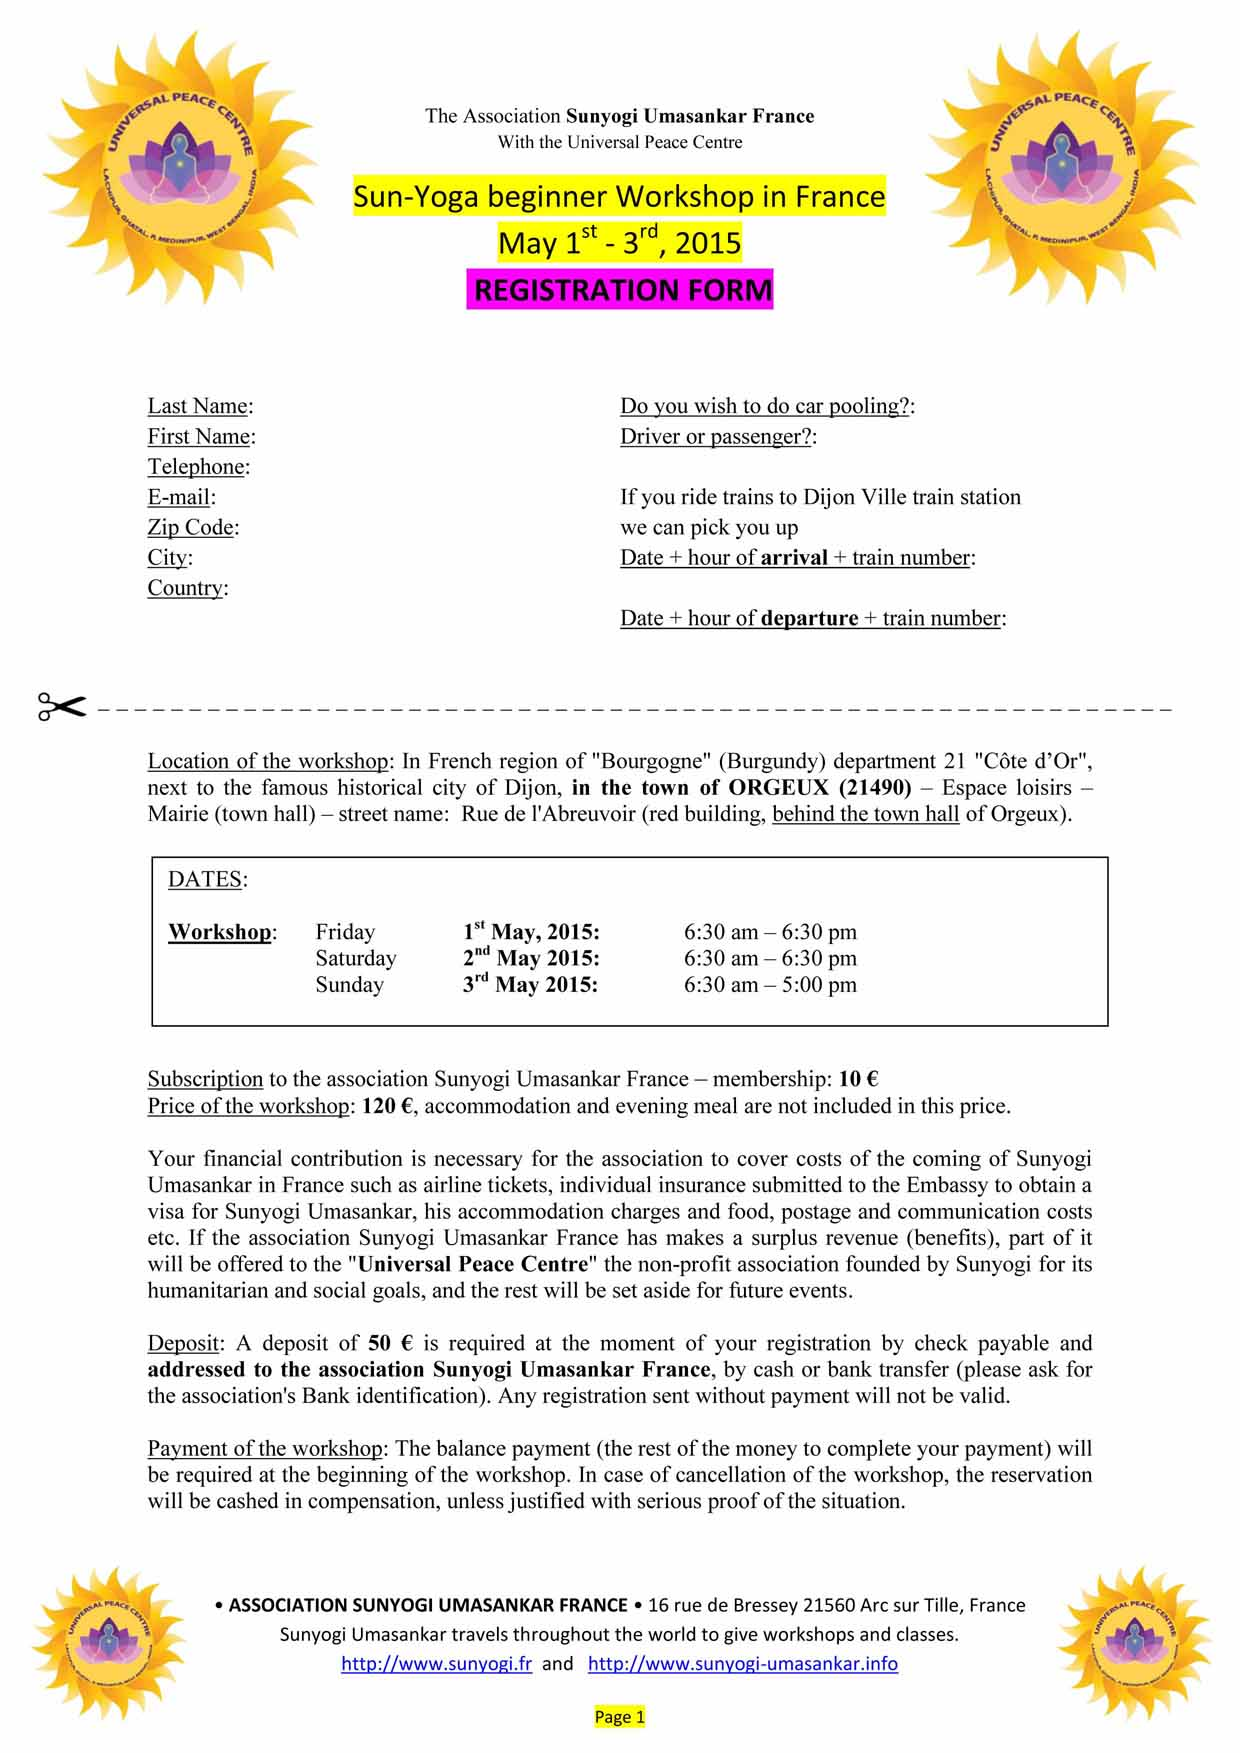 ENG_ SUNYOGA May 1-2-3 2015 REGISTRATION FORM-1